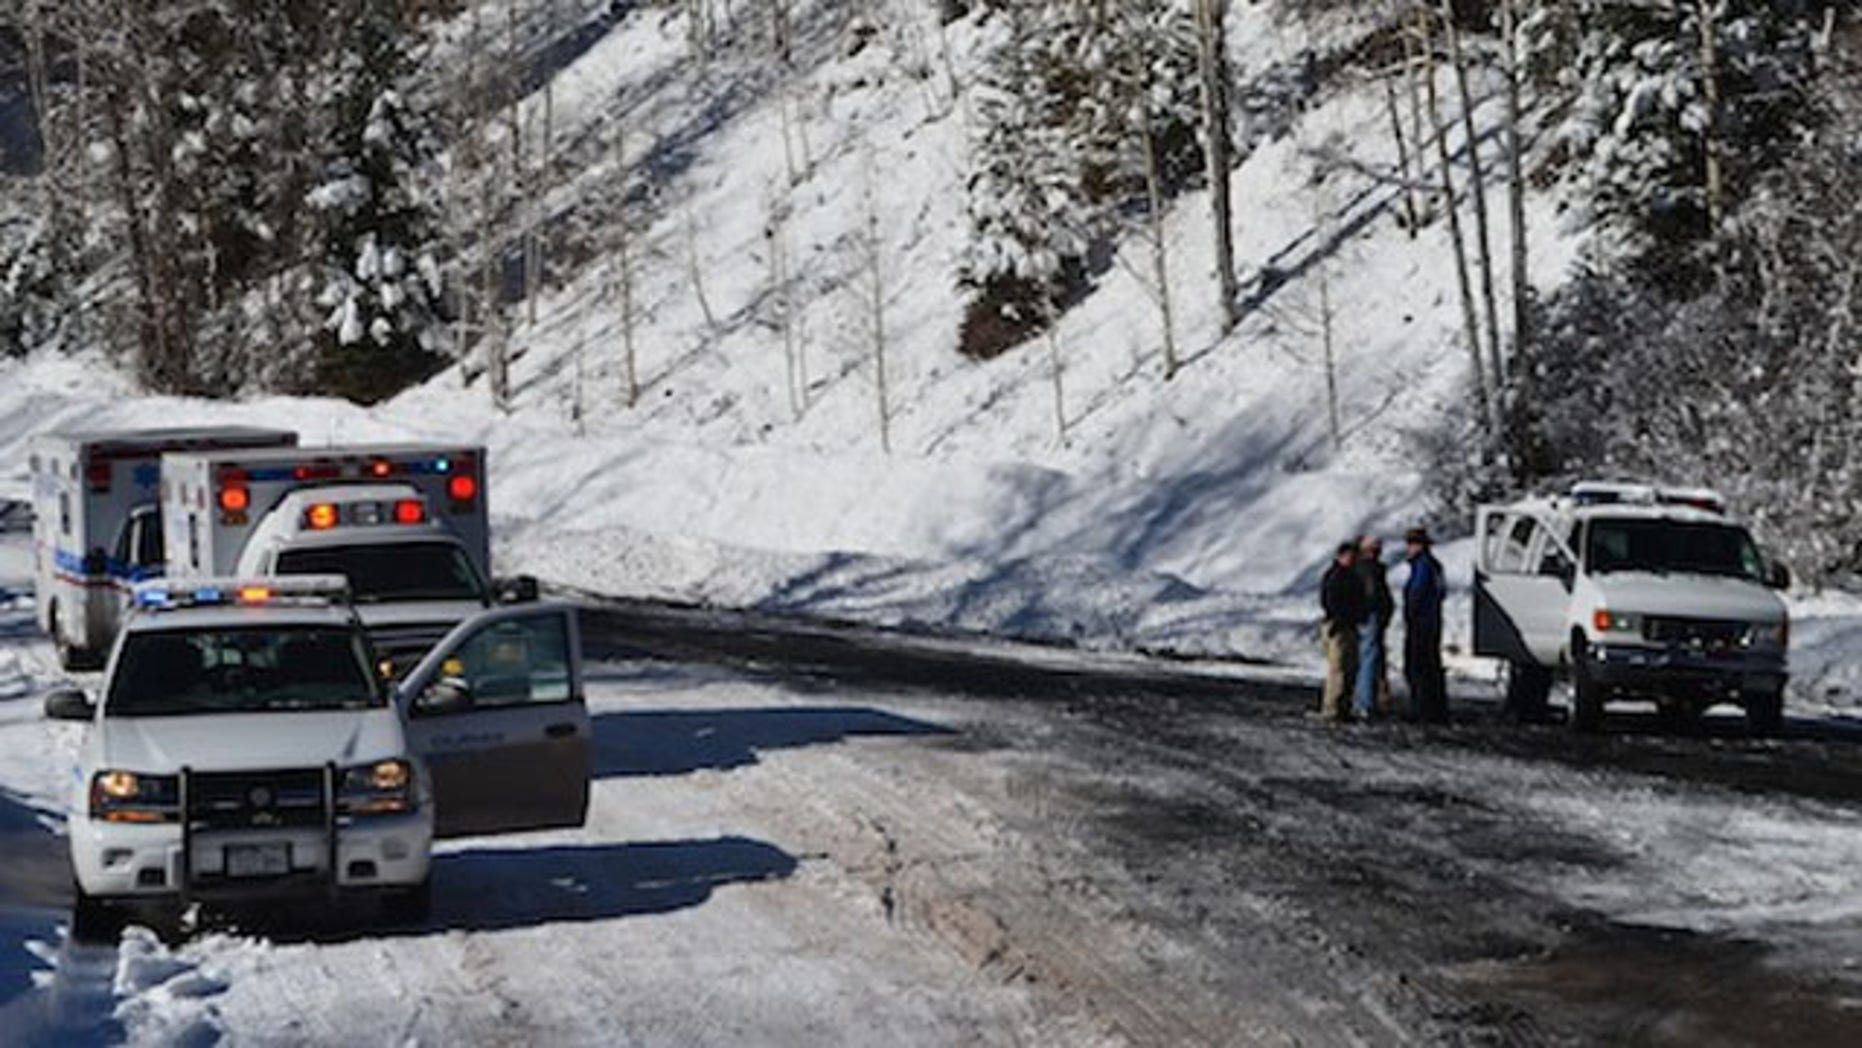 November 17, 2013: Emergency vehicles block the road near the Revenue-Virginius mine near Ourand, Colo. after an accident that killed two miners and injured 20 others. (Courtesy OurayNews.com)